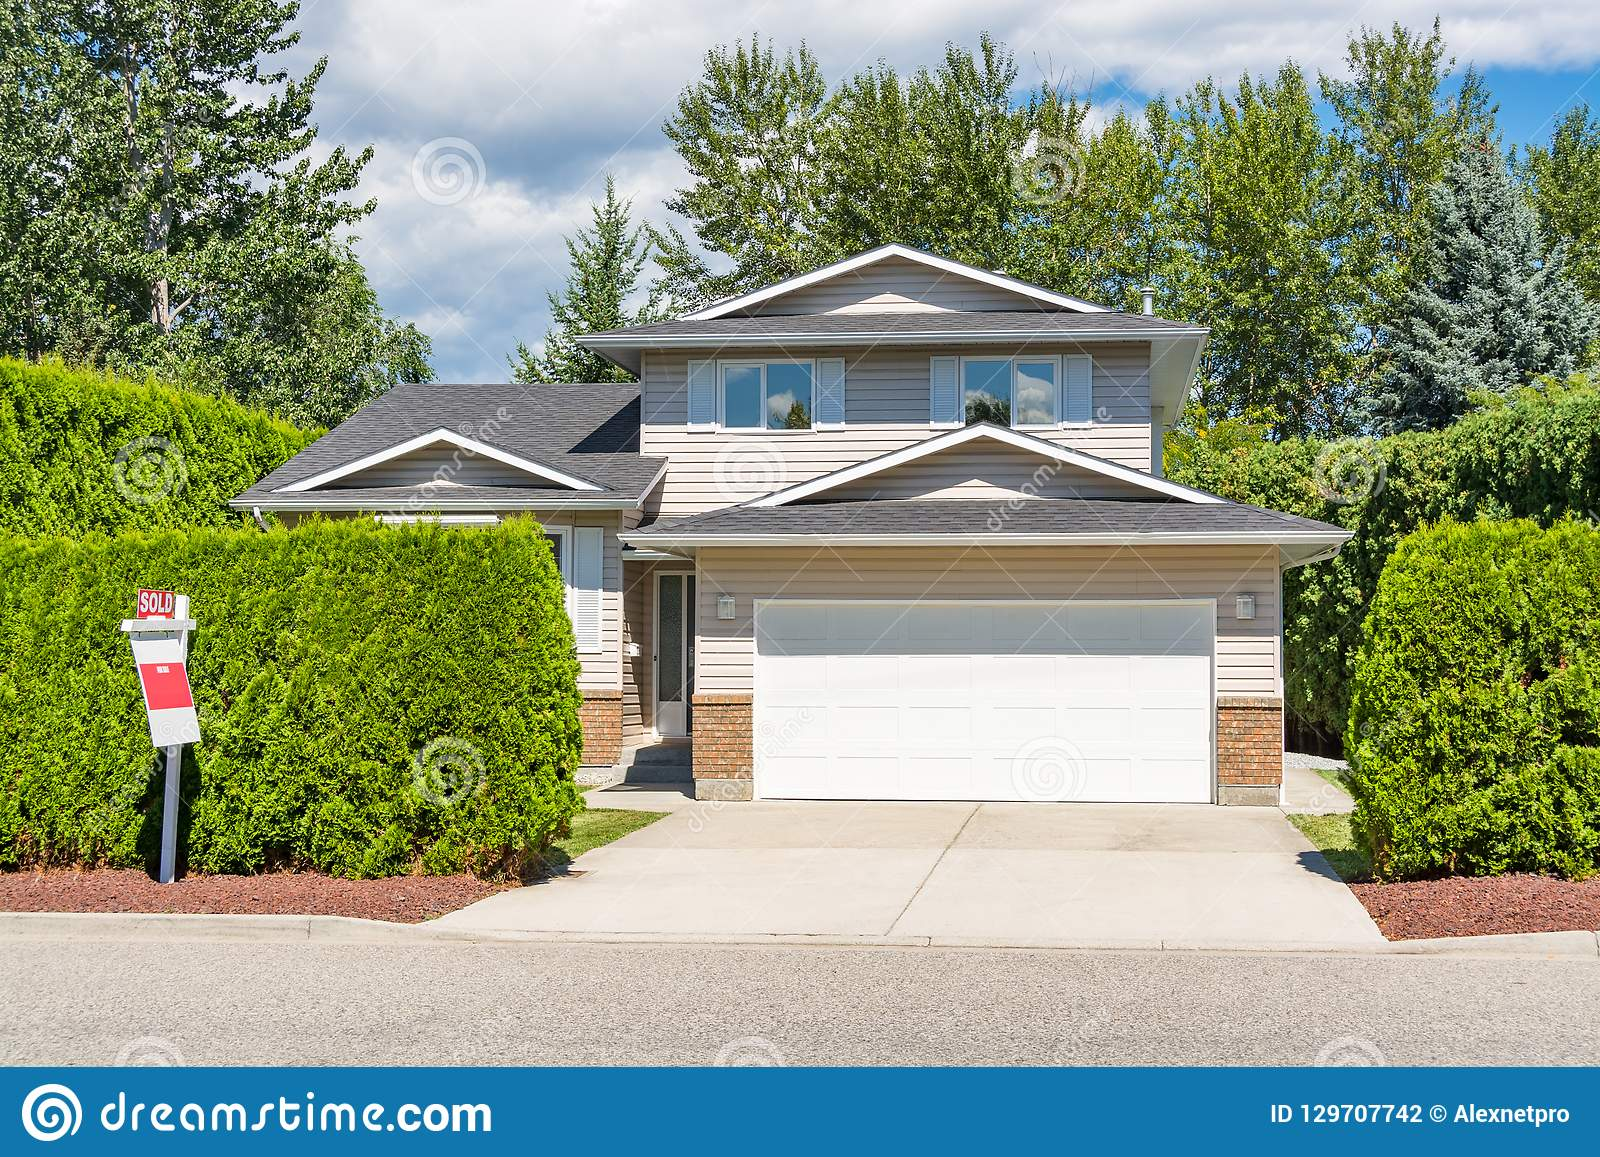 A Perfect Neighbourhood Main Entrance Of Big Residential House With Concrete Driveway And Green Hedge In Front Family House For Stock Photo Image Of Modern Front 129707742